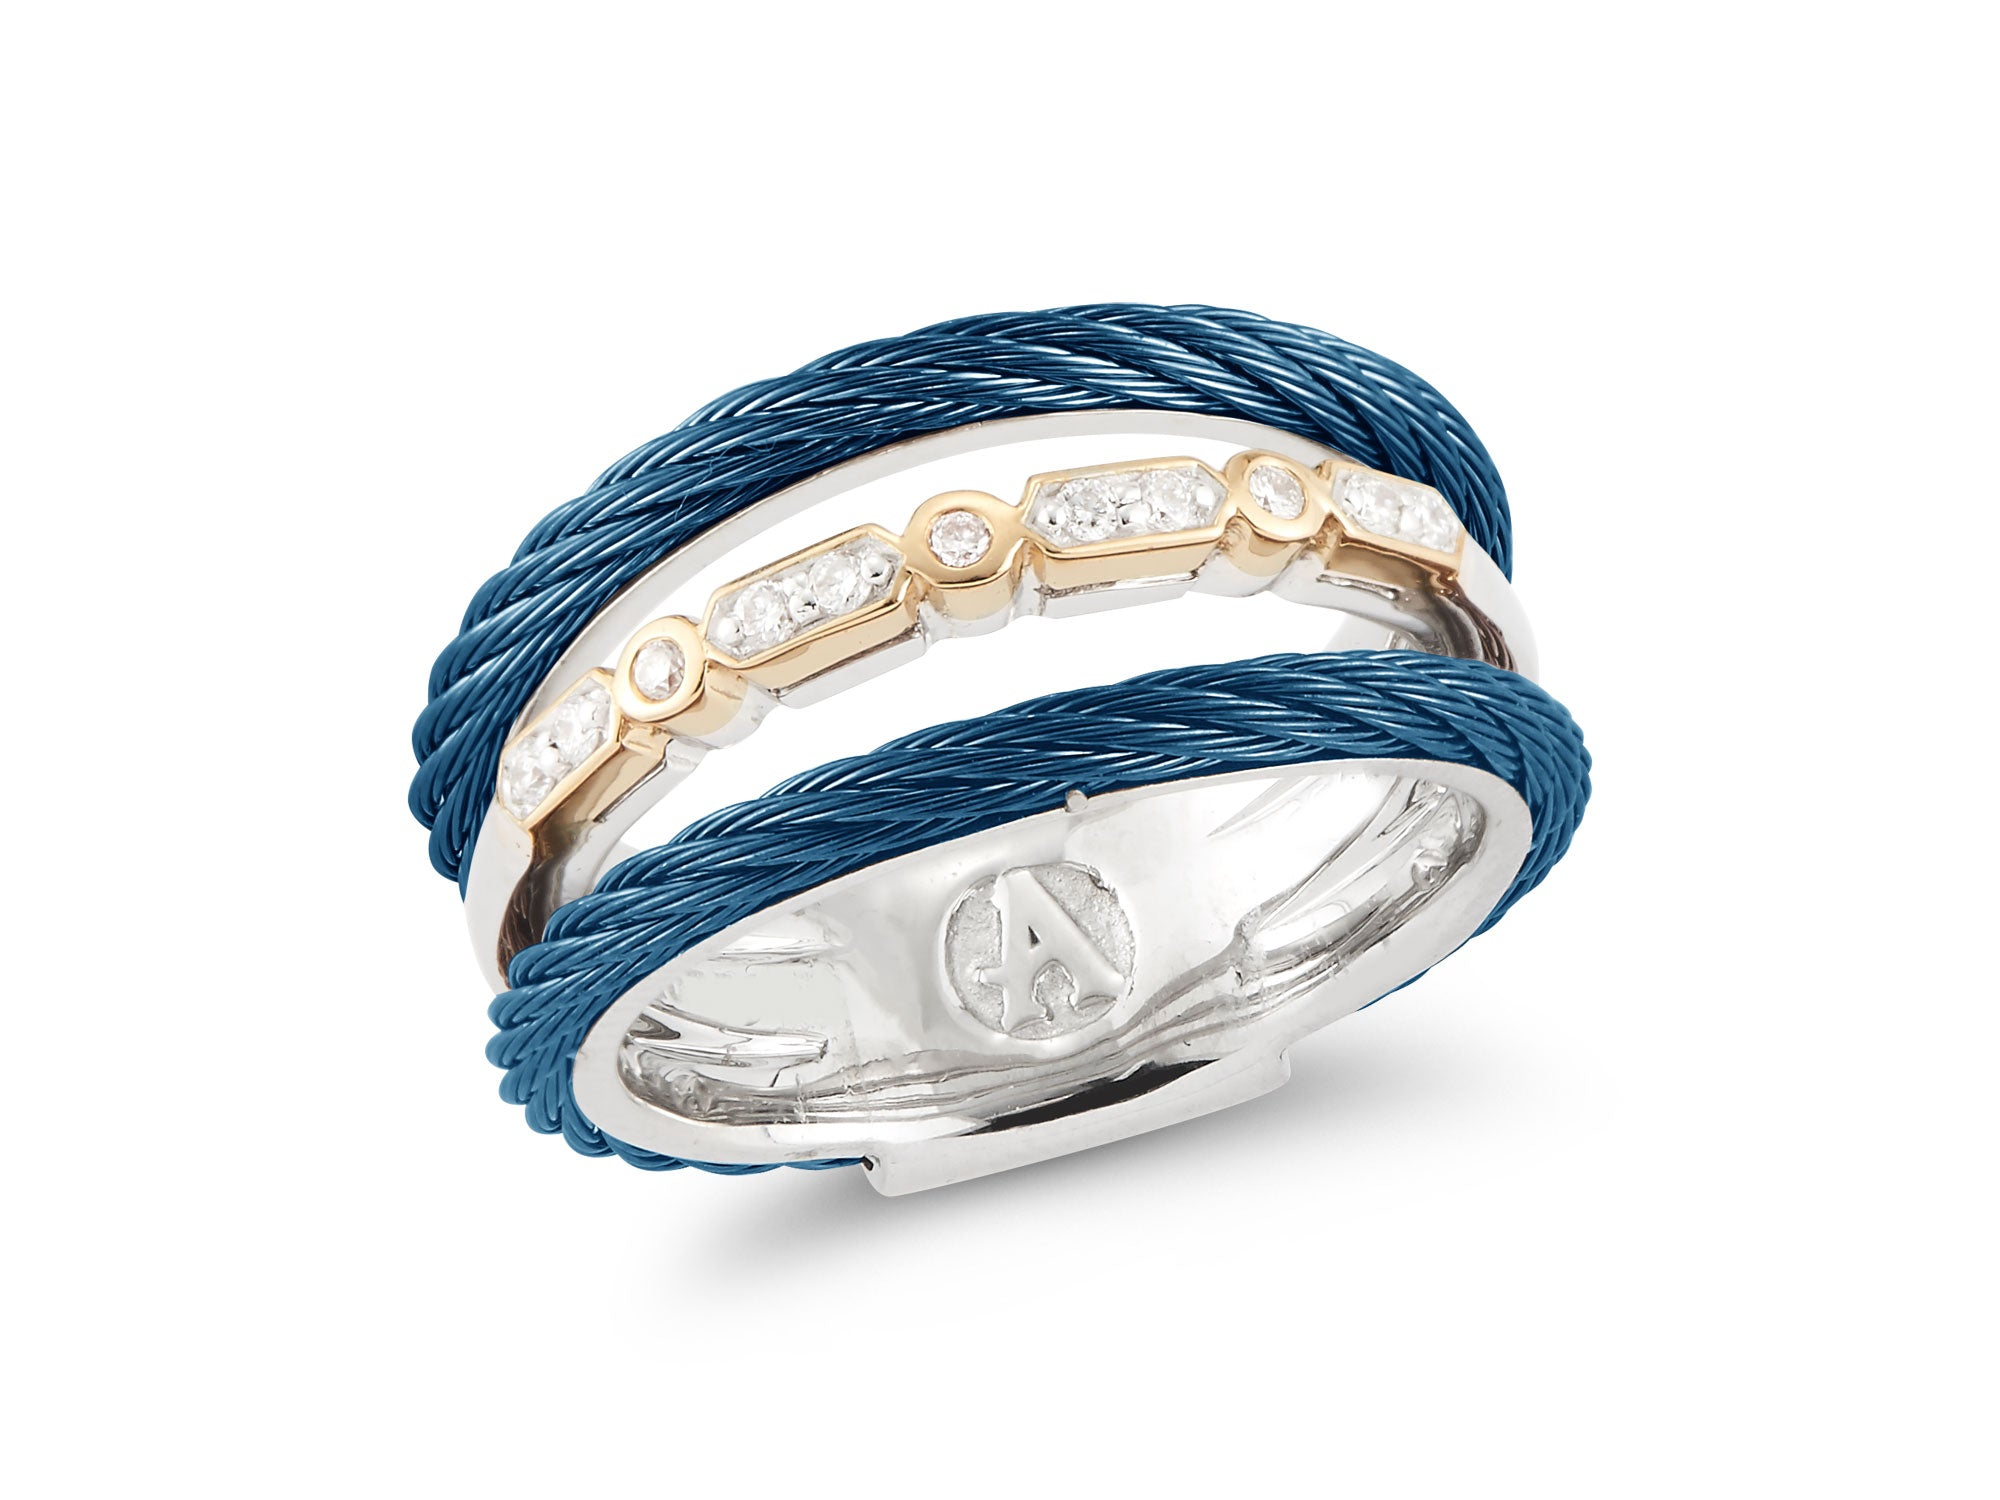 ALOR Fresh Finds Blueberry Cable, Diamond Wrap Ring